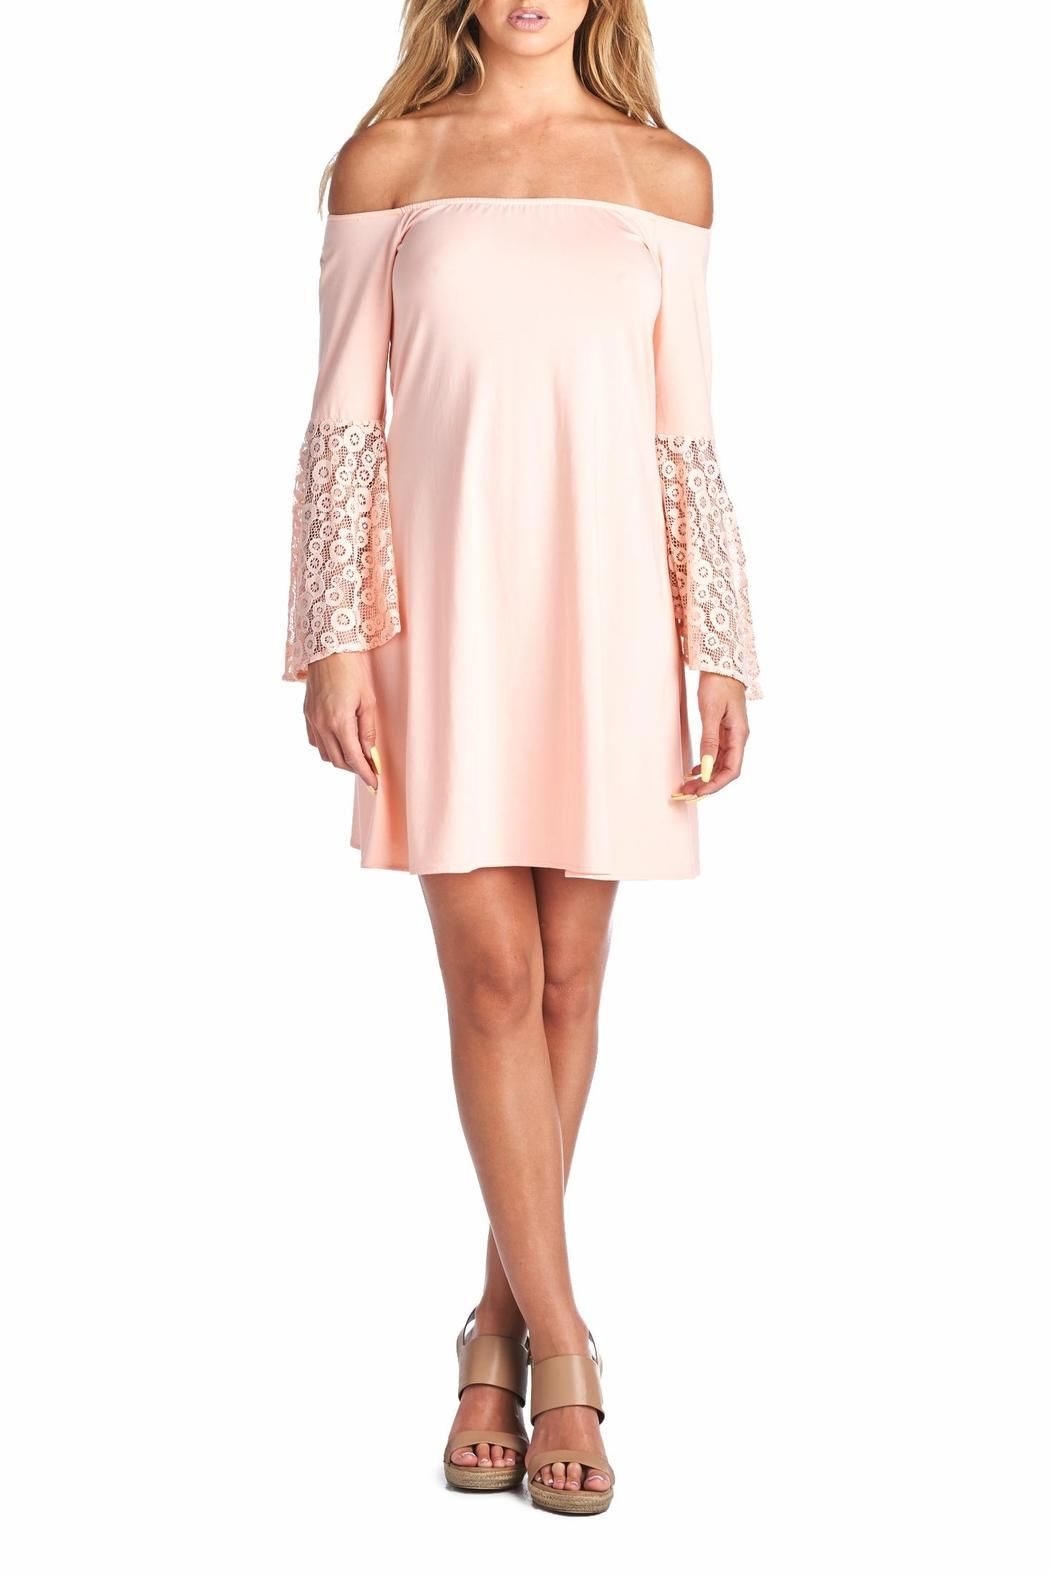 Off the shoulder solid tunic top or dress with lace sleeve detailing. Stretchy rayon fabric.   Laura Dress by Racine. Clothing - Dresses - Off The Shoulder California